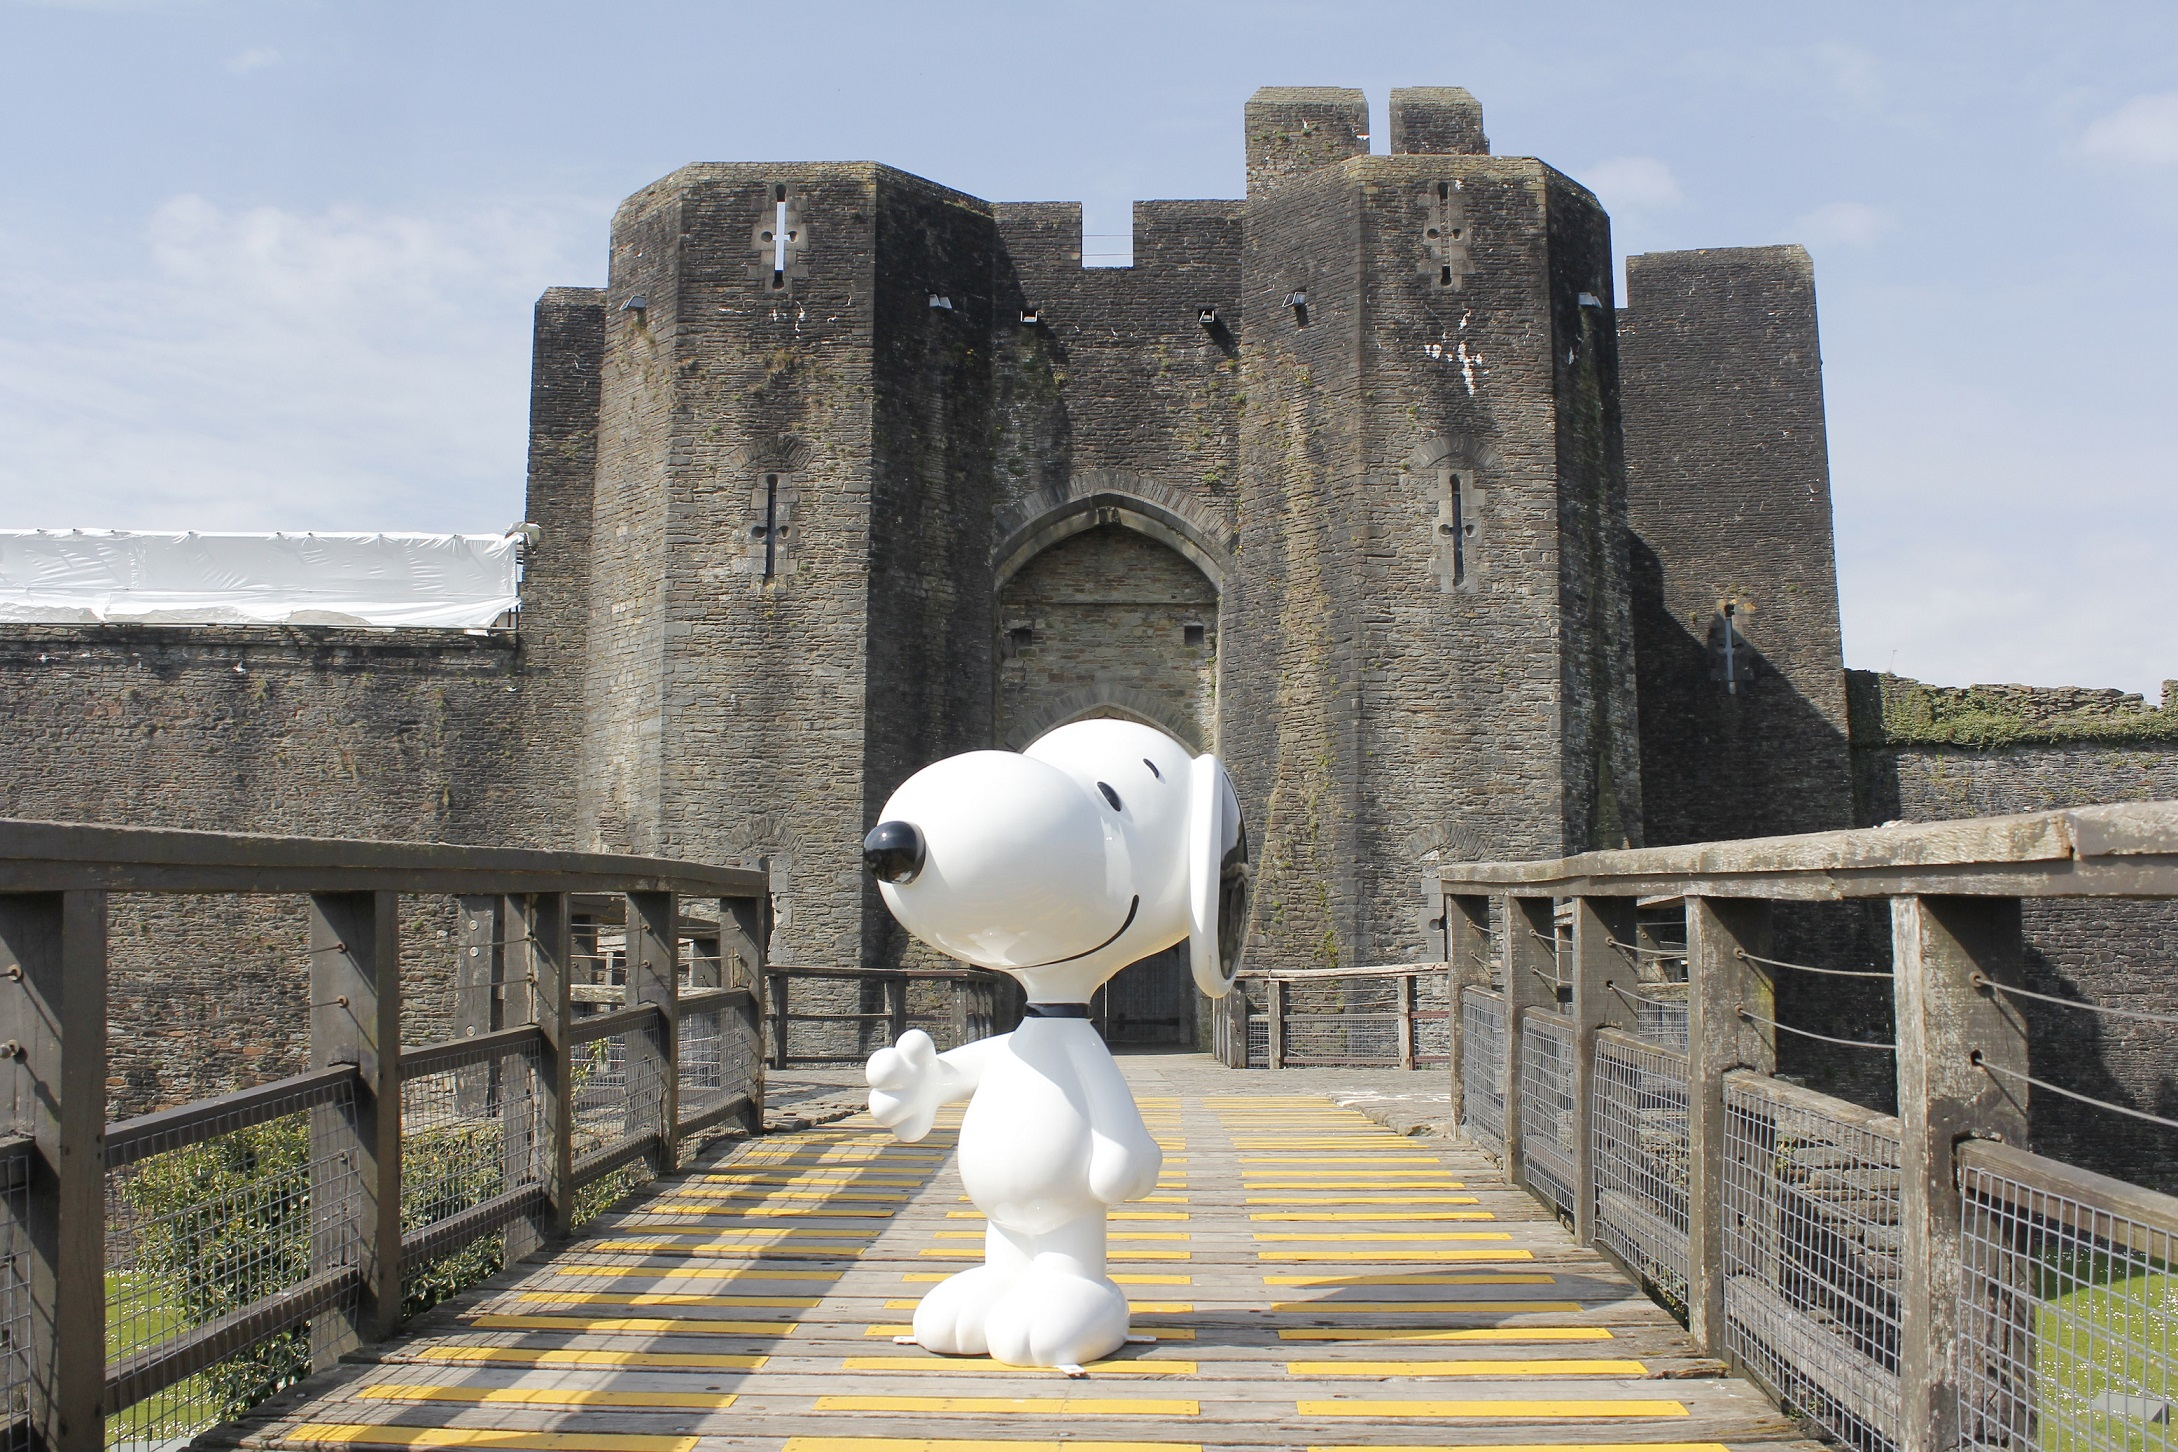 Snoopy at Caerphilly Castle